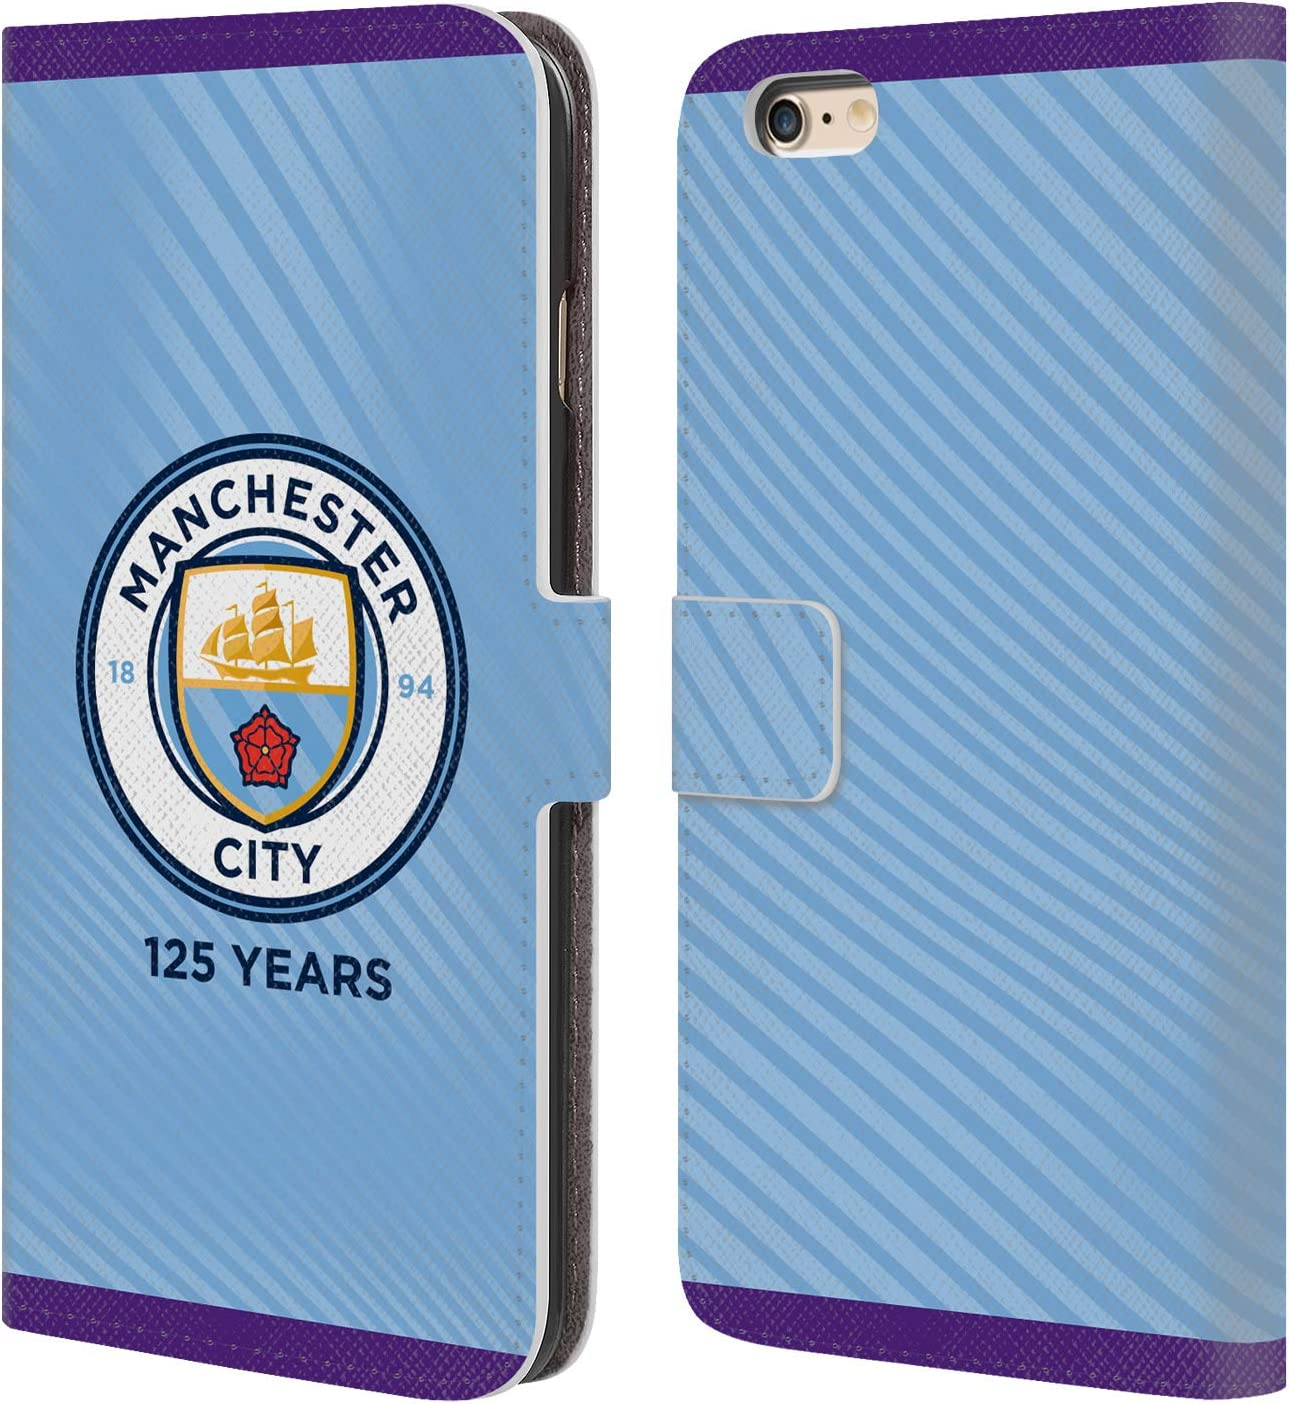 Iphone 6s Official Manchester City Man City Fc Home 2019 20 Badge Kit Leather Book Wallet Case Cover Compatible For Iphone 6 Accessories Chargers Charger Docks